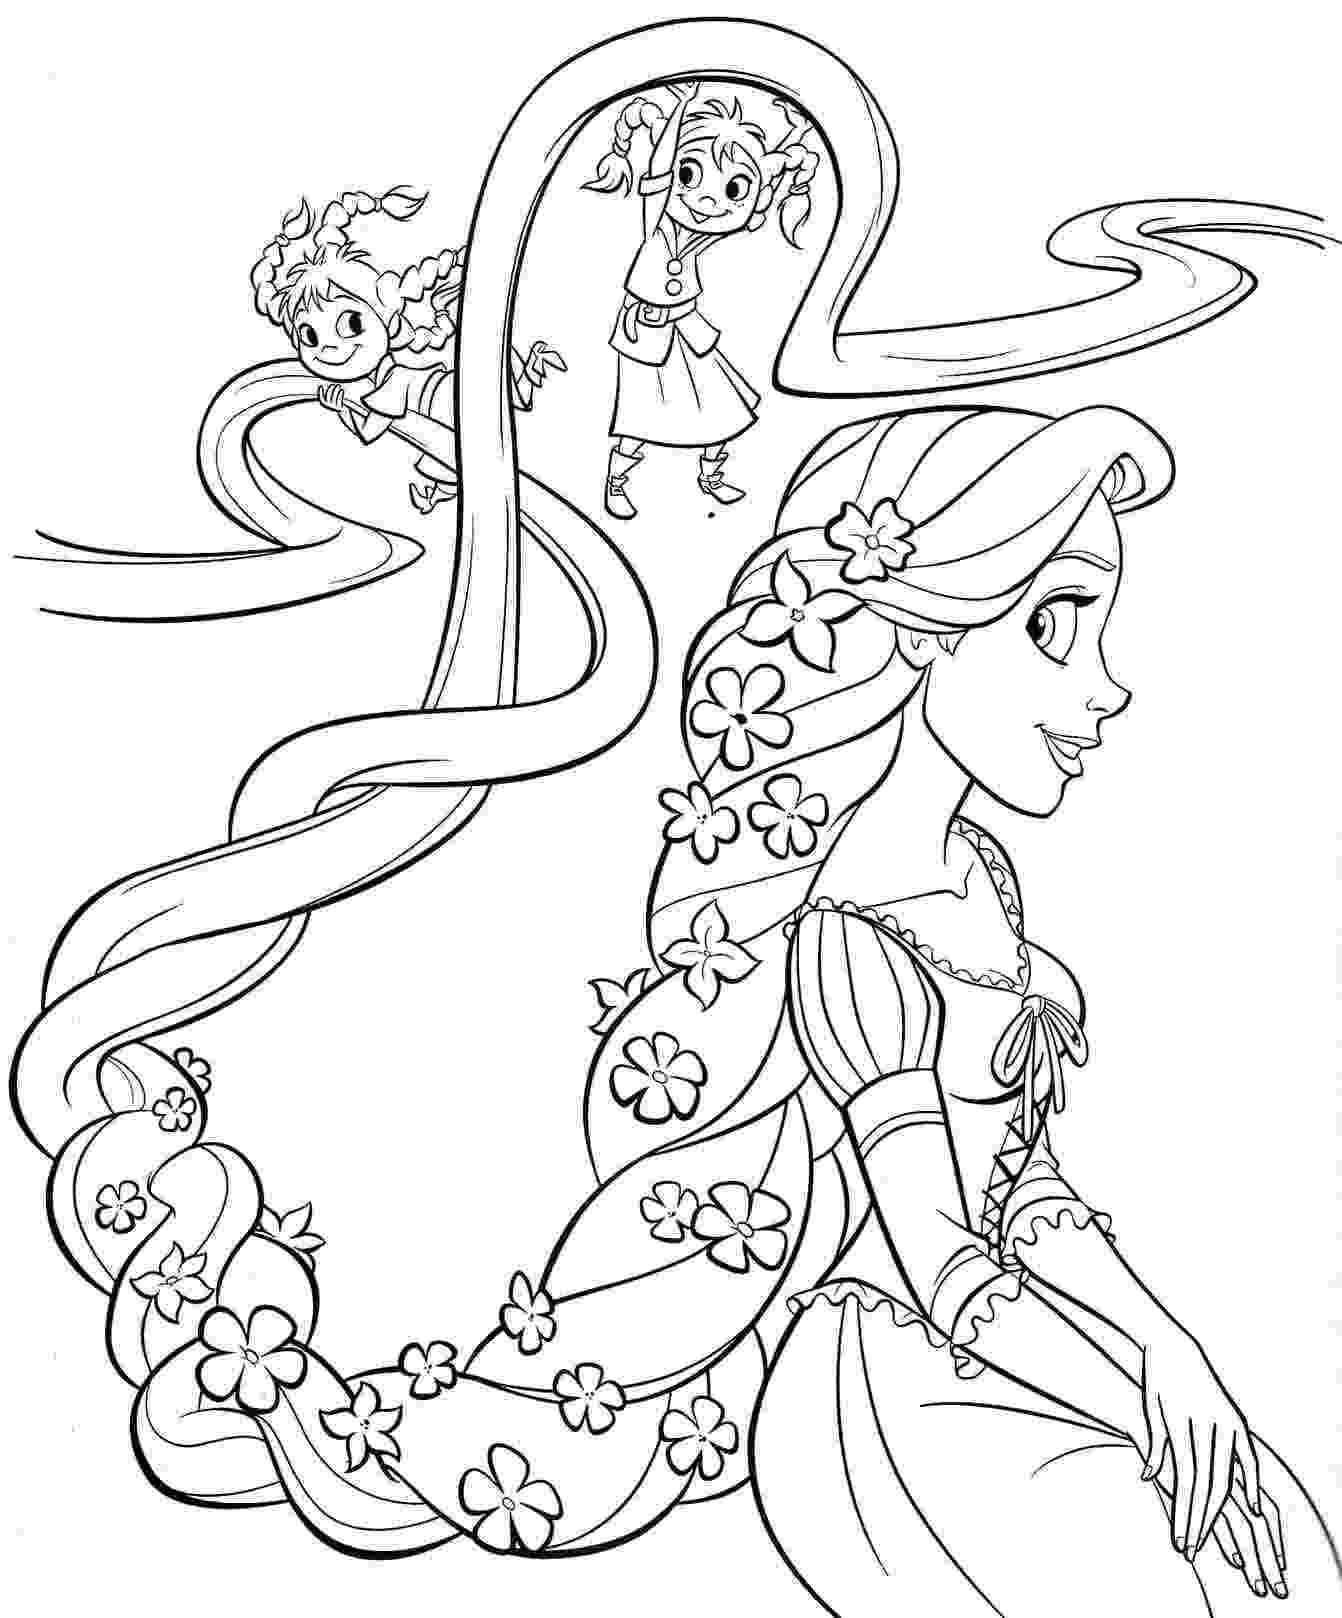 coloring pages princesses princess coloring pages best coloring pages for kids coloring princesses pages